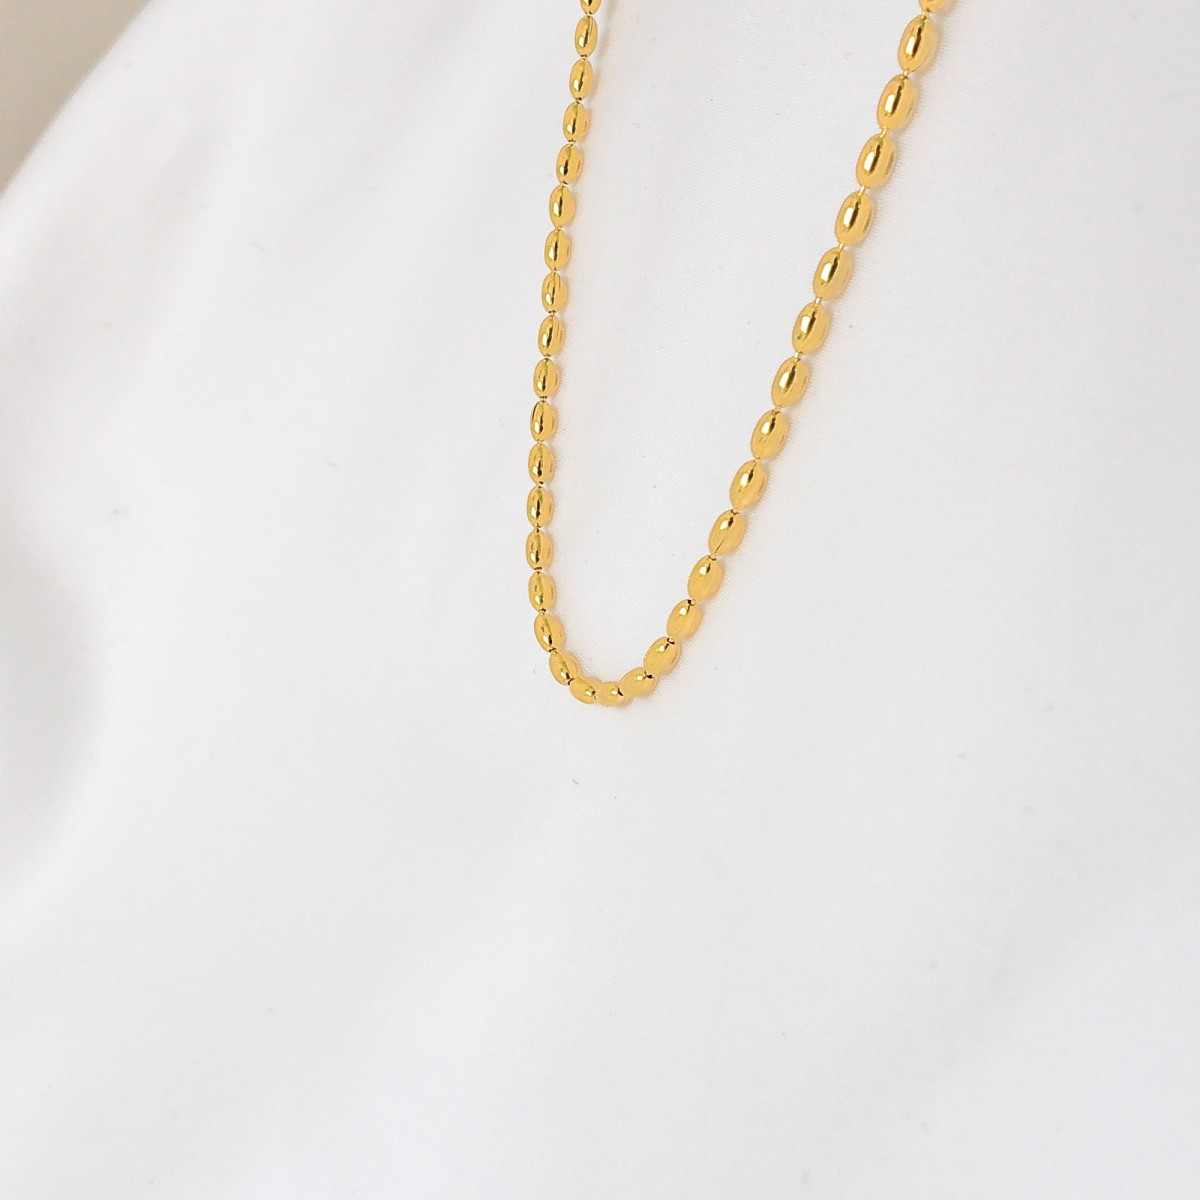 ST'ATOUR OLIVIA THIN - Kette in Gold, Silber oder Roségold